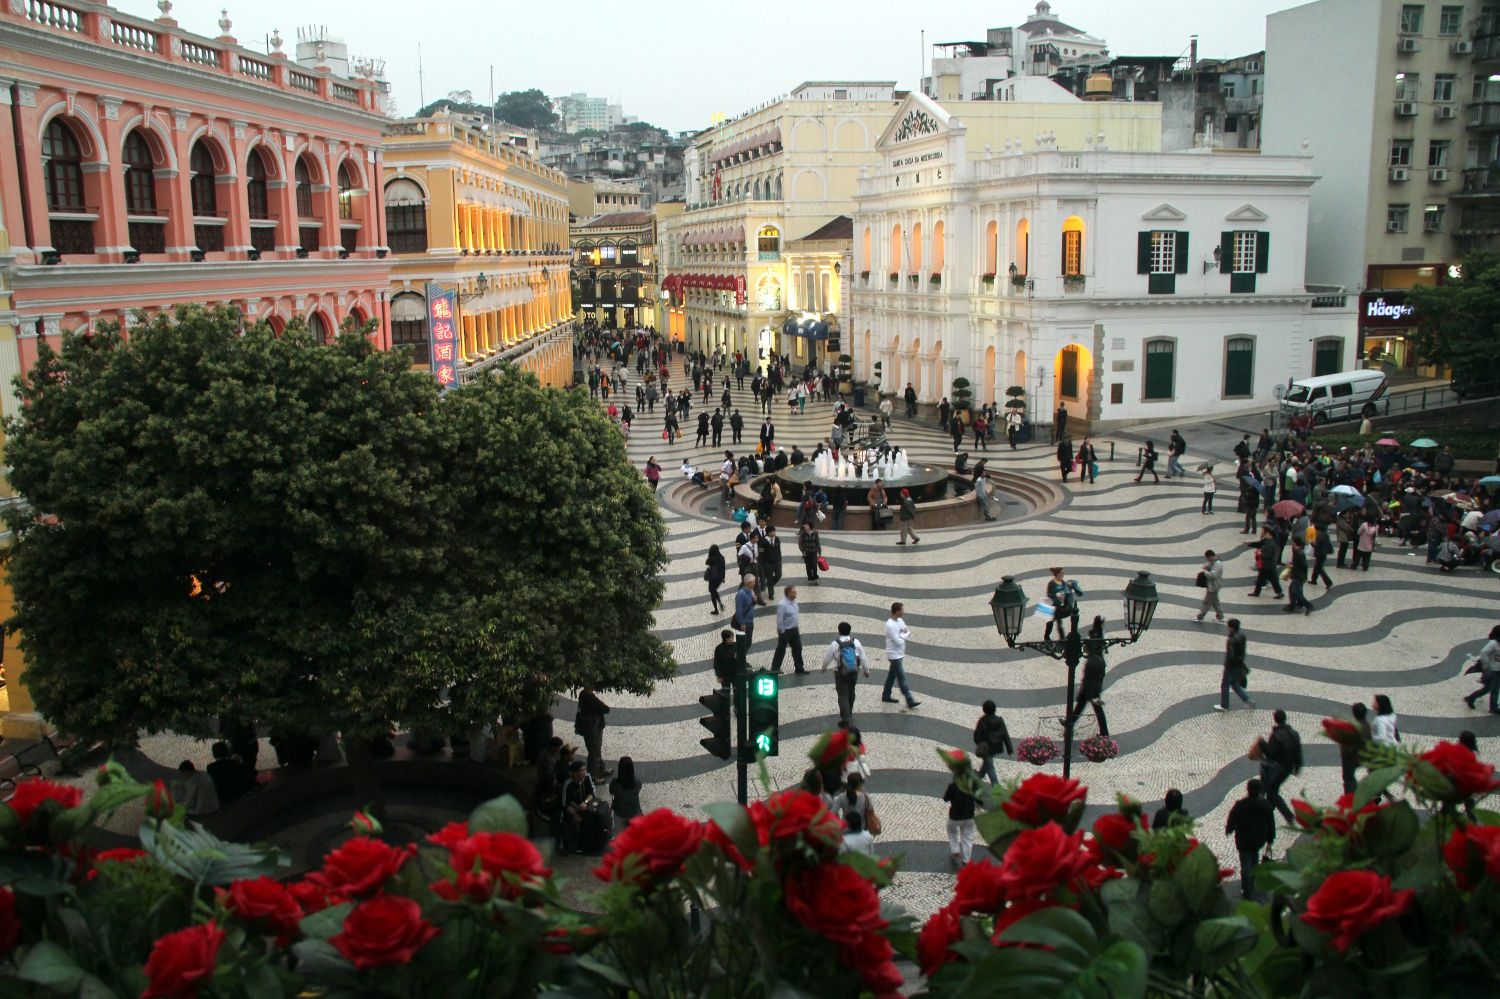 Largo do Senado, no centro histórico de Macau (foto: Eduardo Vessoni)